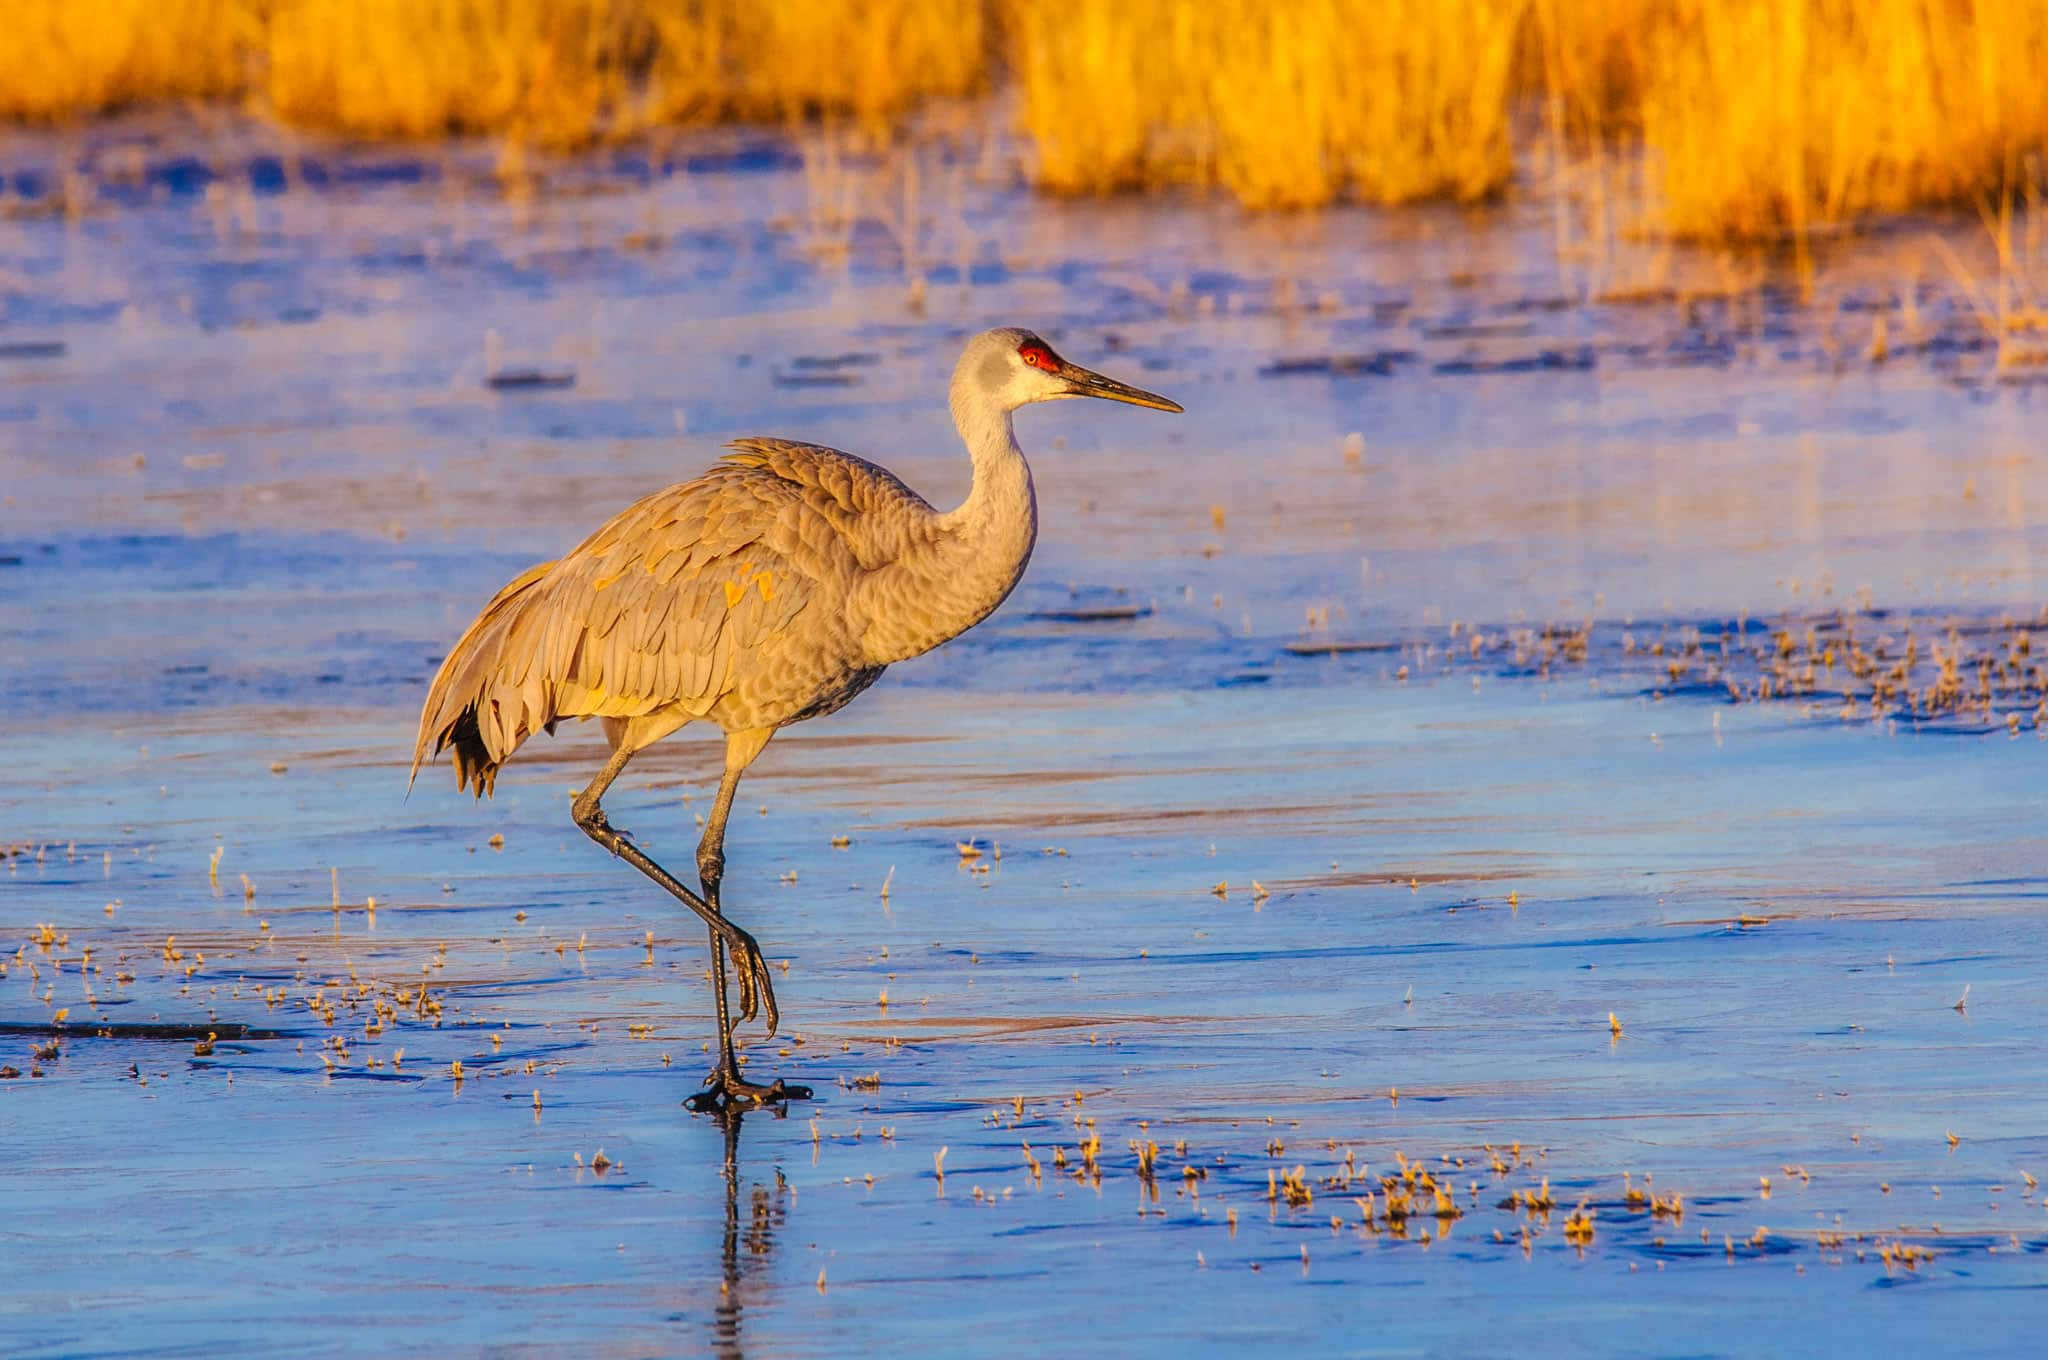 A Sandhill Crane walks across the ice atop the pond where it spent the night.